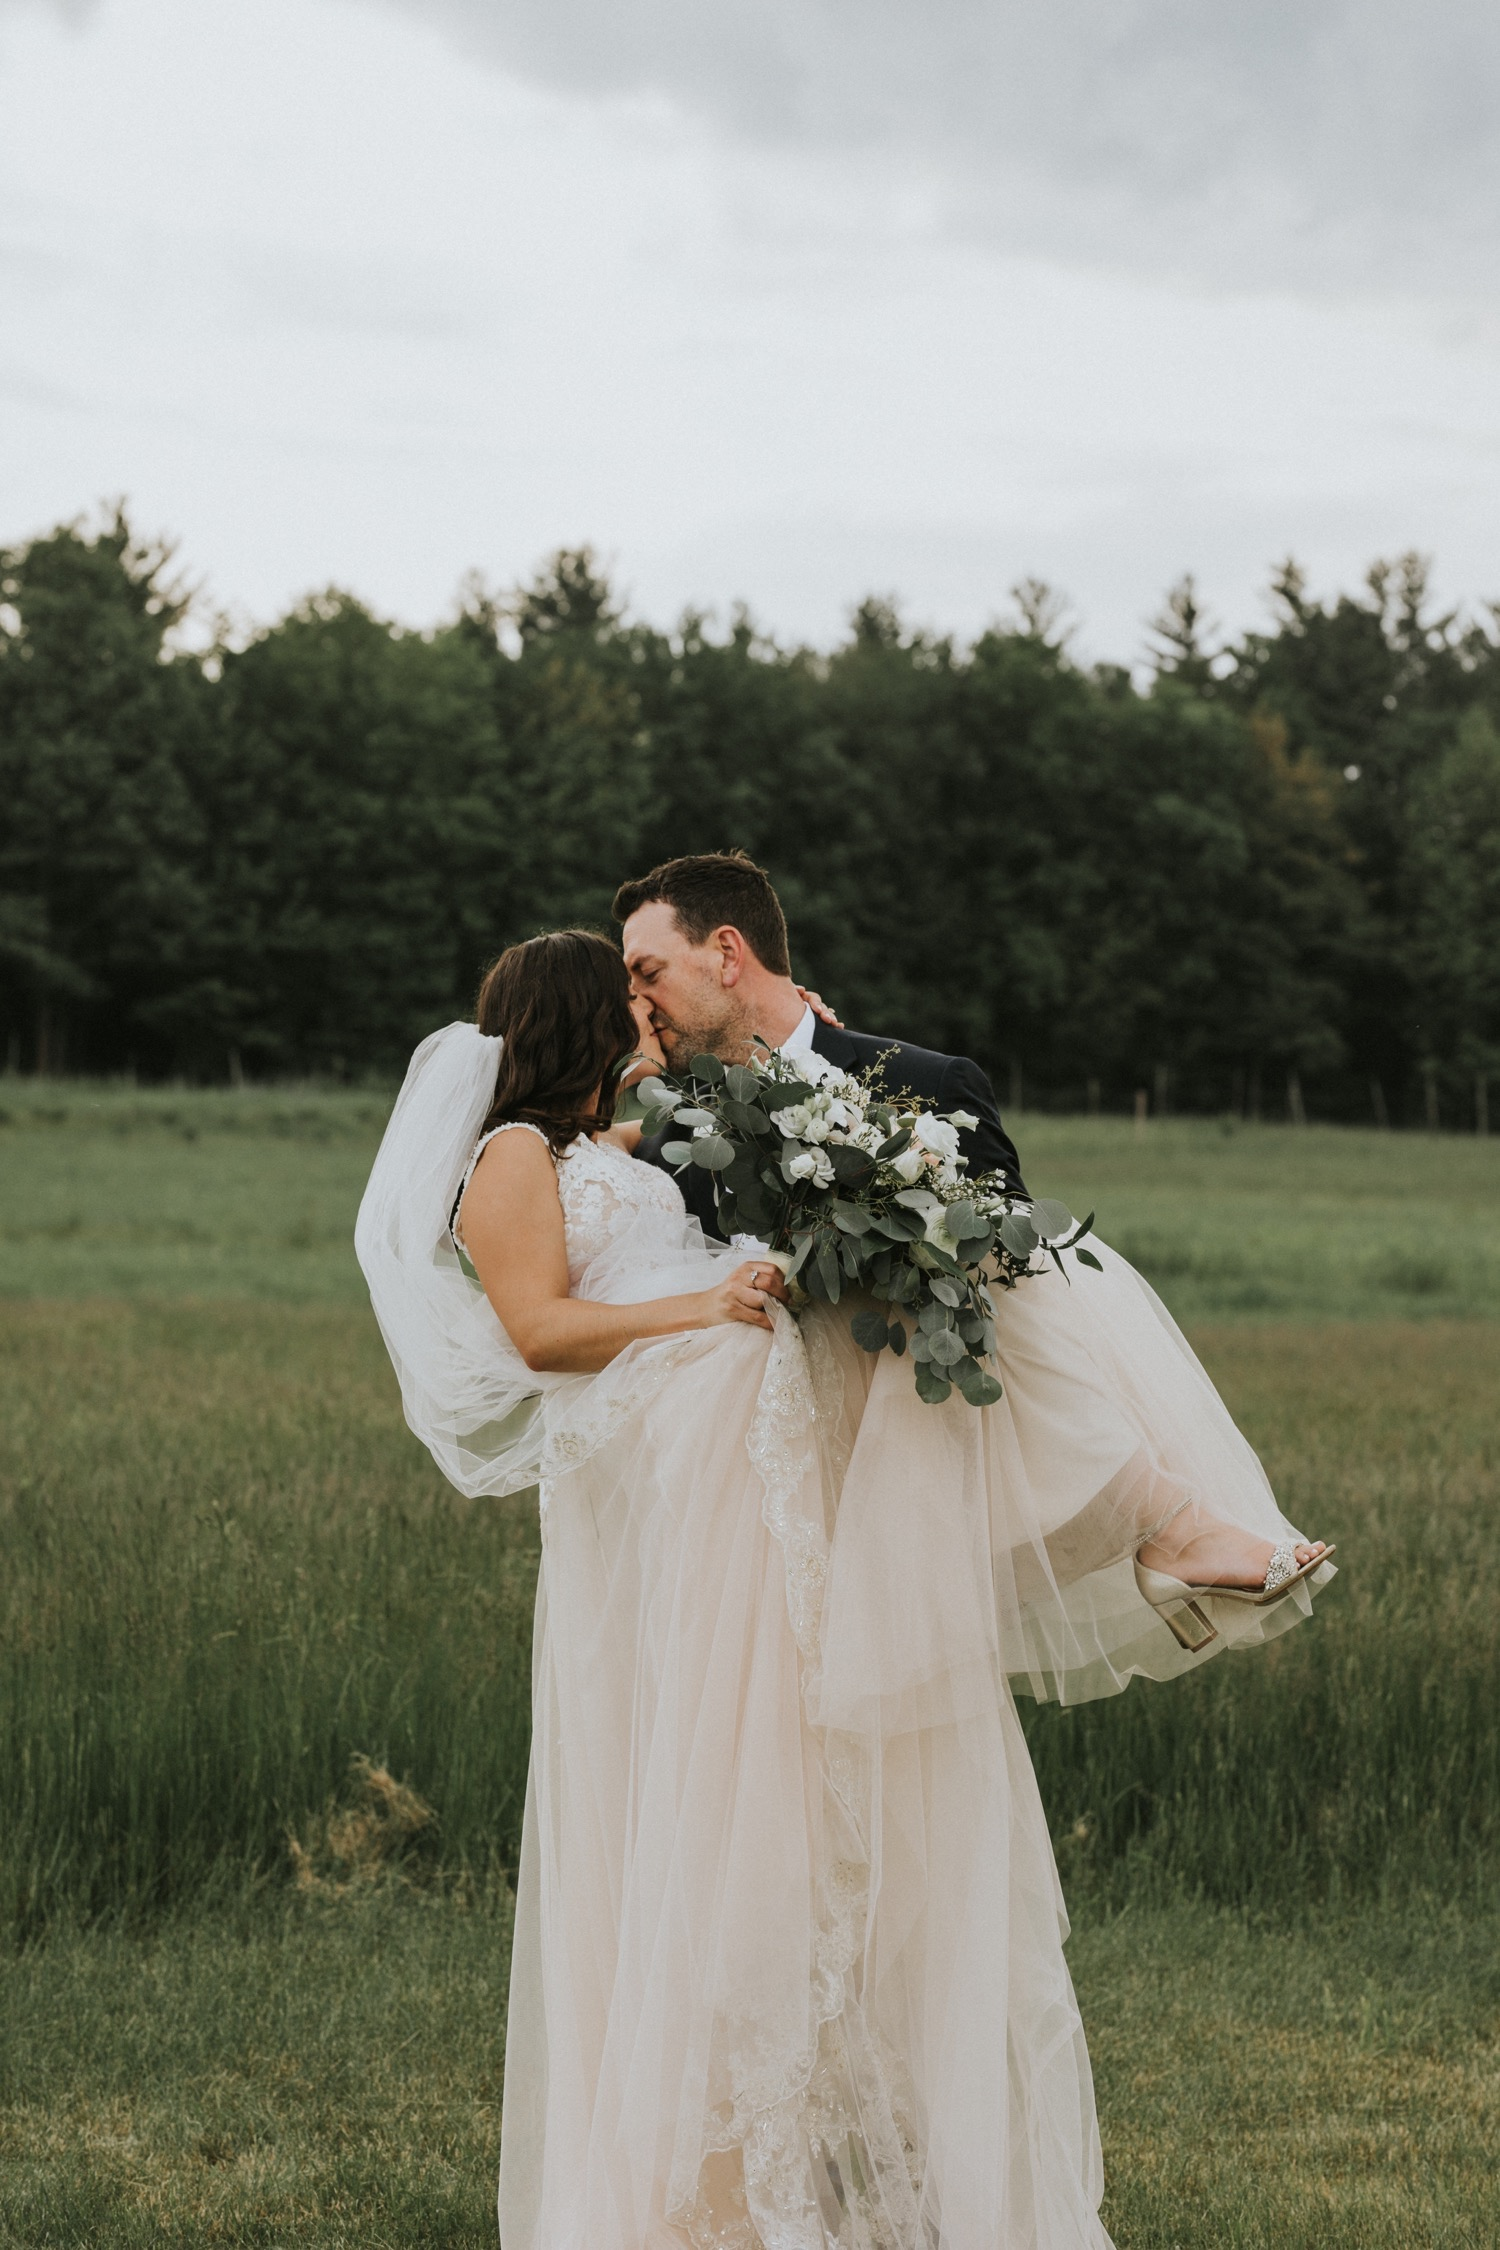 Hudson Valley Wedding Photographer, Hudson Valley Wedding, Massachusetts Wedding, Valley View Farm Wedding, Valley View Farm, Wedding Ceremony, New York Wedding Photographer, Wedding Details